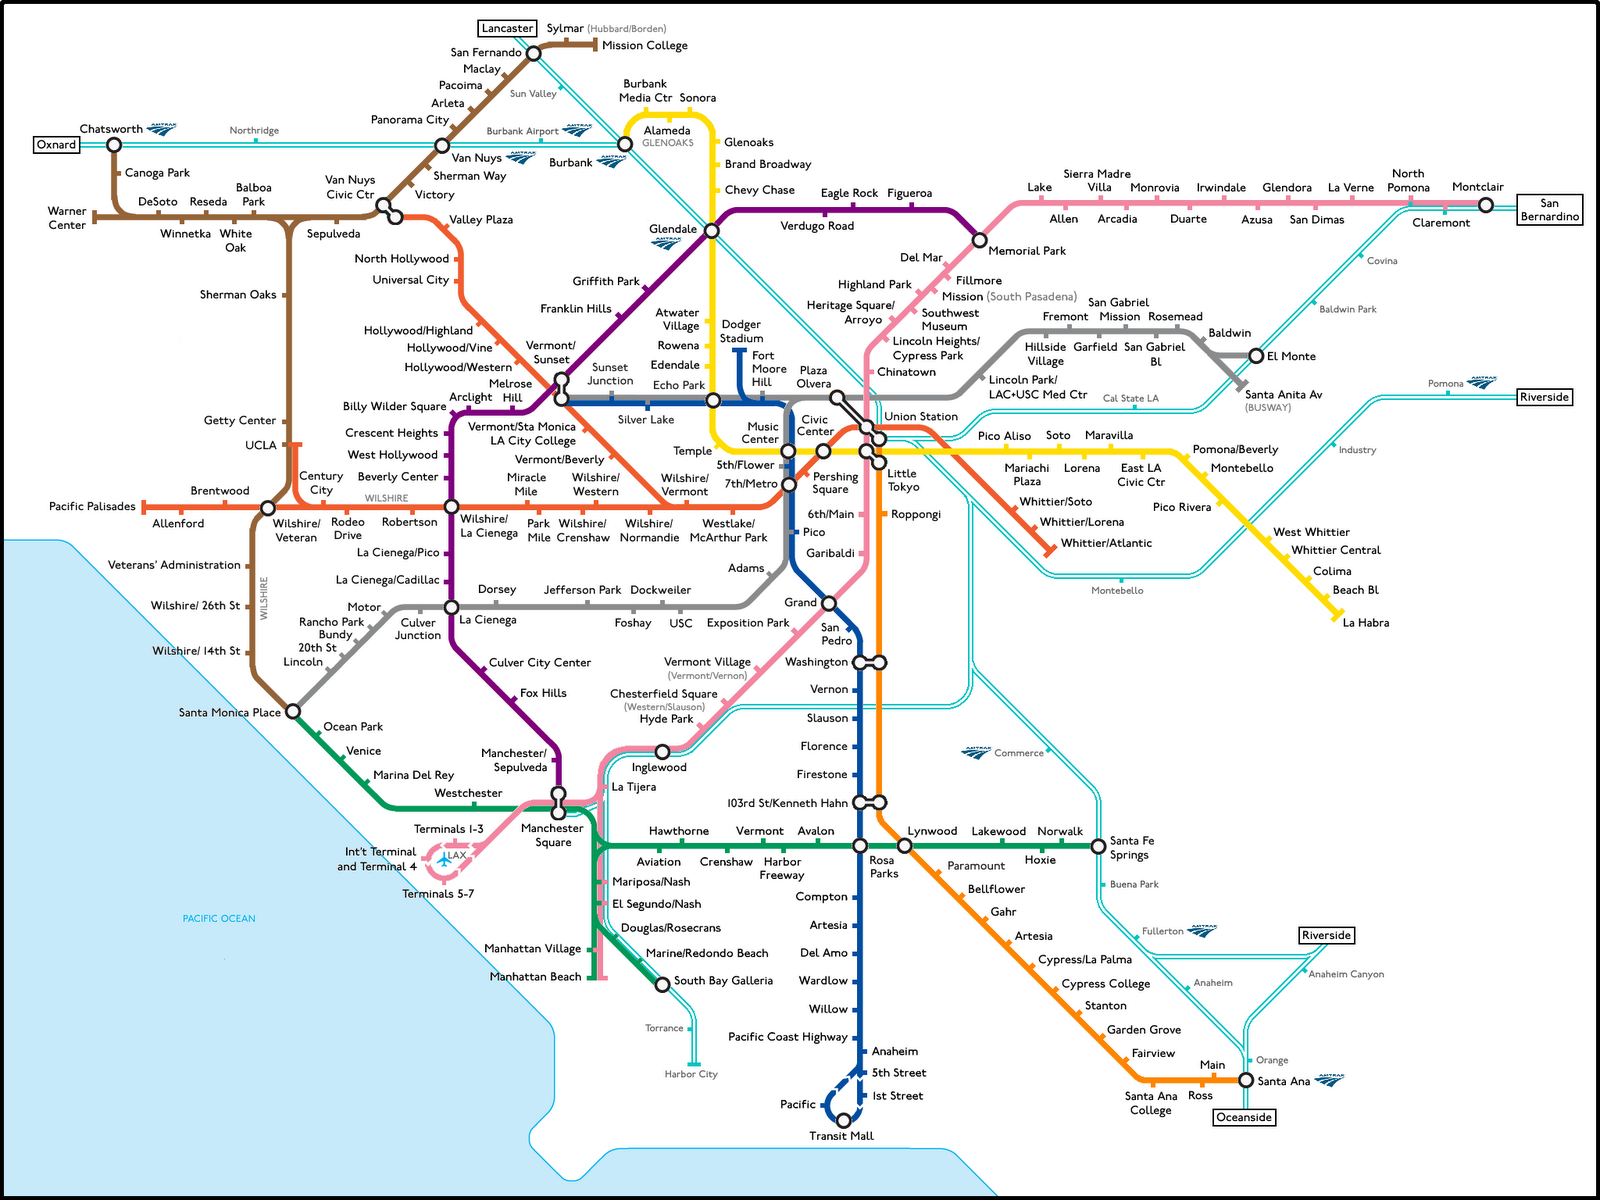 La metro dating site